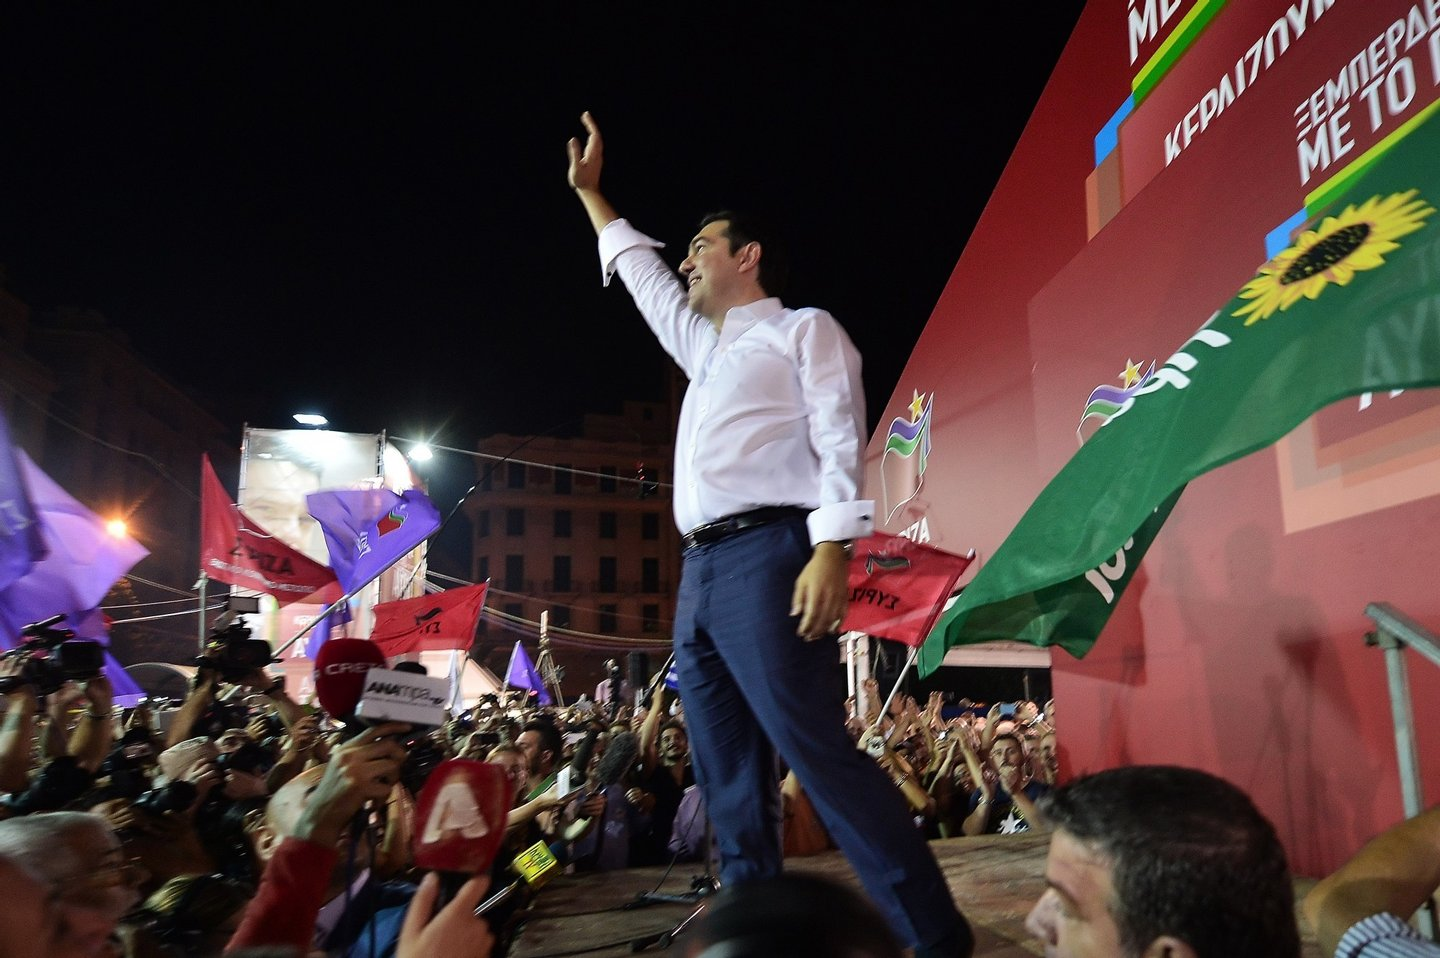 Syriza leader Alexis Tsipras celebrates with crowds after his party's victory at the Greek general elections in Athens on September 20, 2015. With over half of the votes counted, Tsipras' Syriza party won 35.54 percent of the vote against 28.07 percent for conservative New Democracy and is likely to again form a coalition government with the nationalist Independent Greeks (ANEL) party. AFP PHOTO/ LOUISA GOULIAMAKI (Photo credit should read LOUISA GOULIAMAKI/AFP/Getty Images)